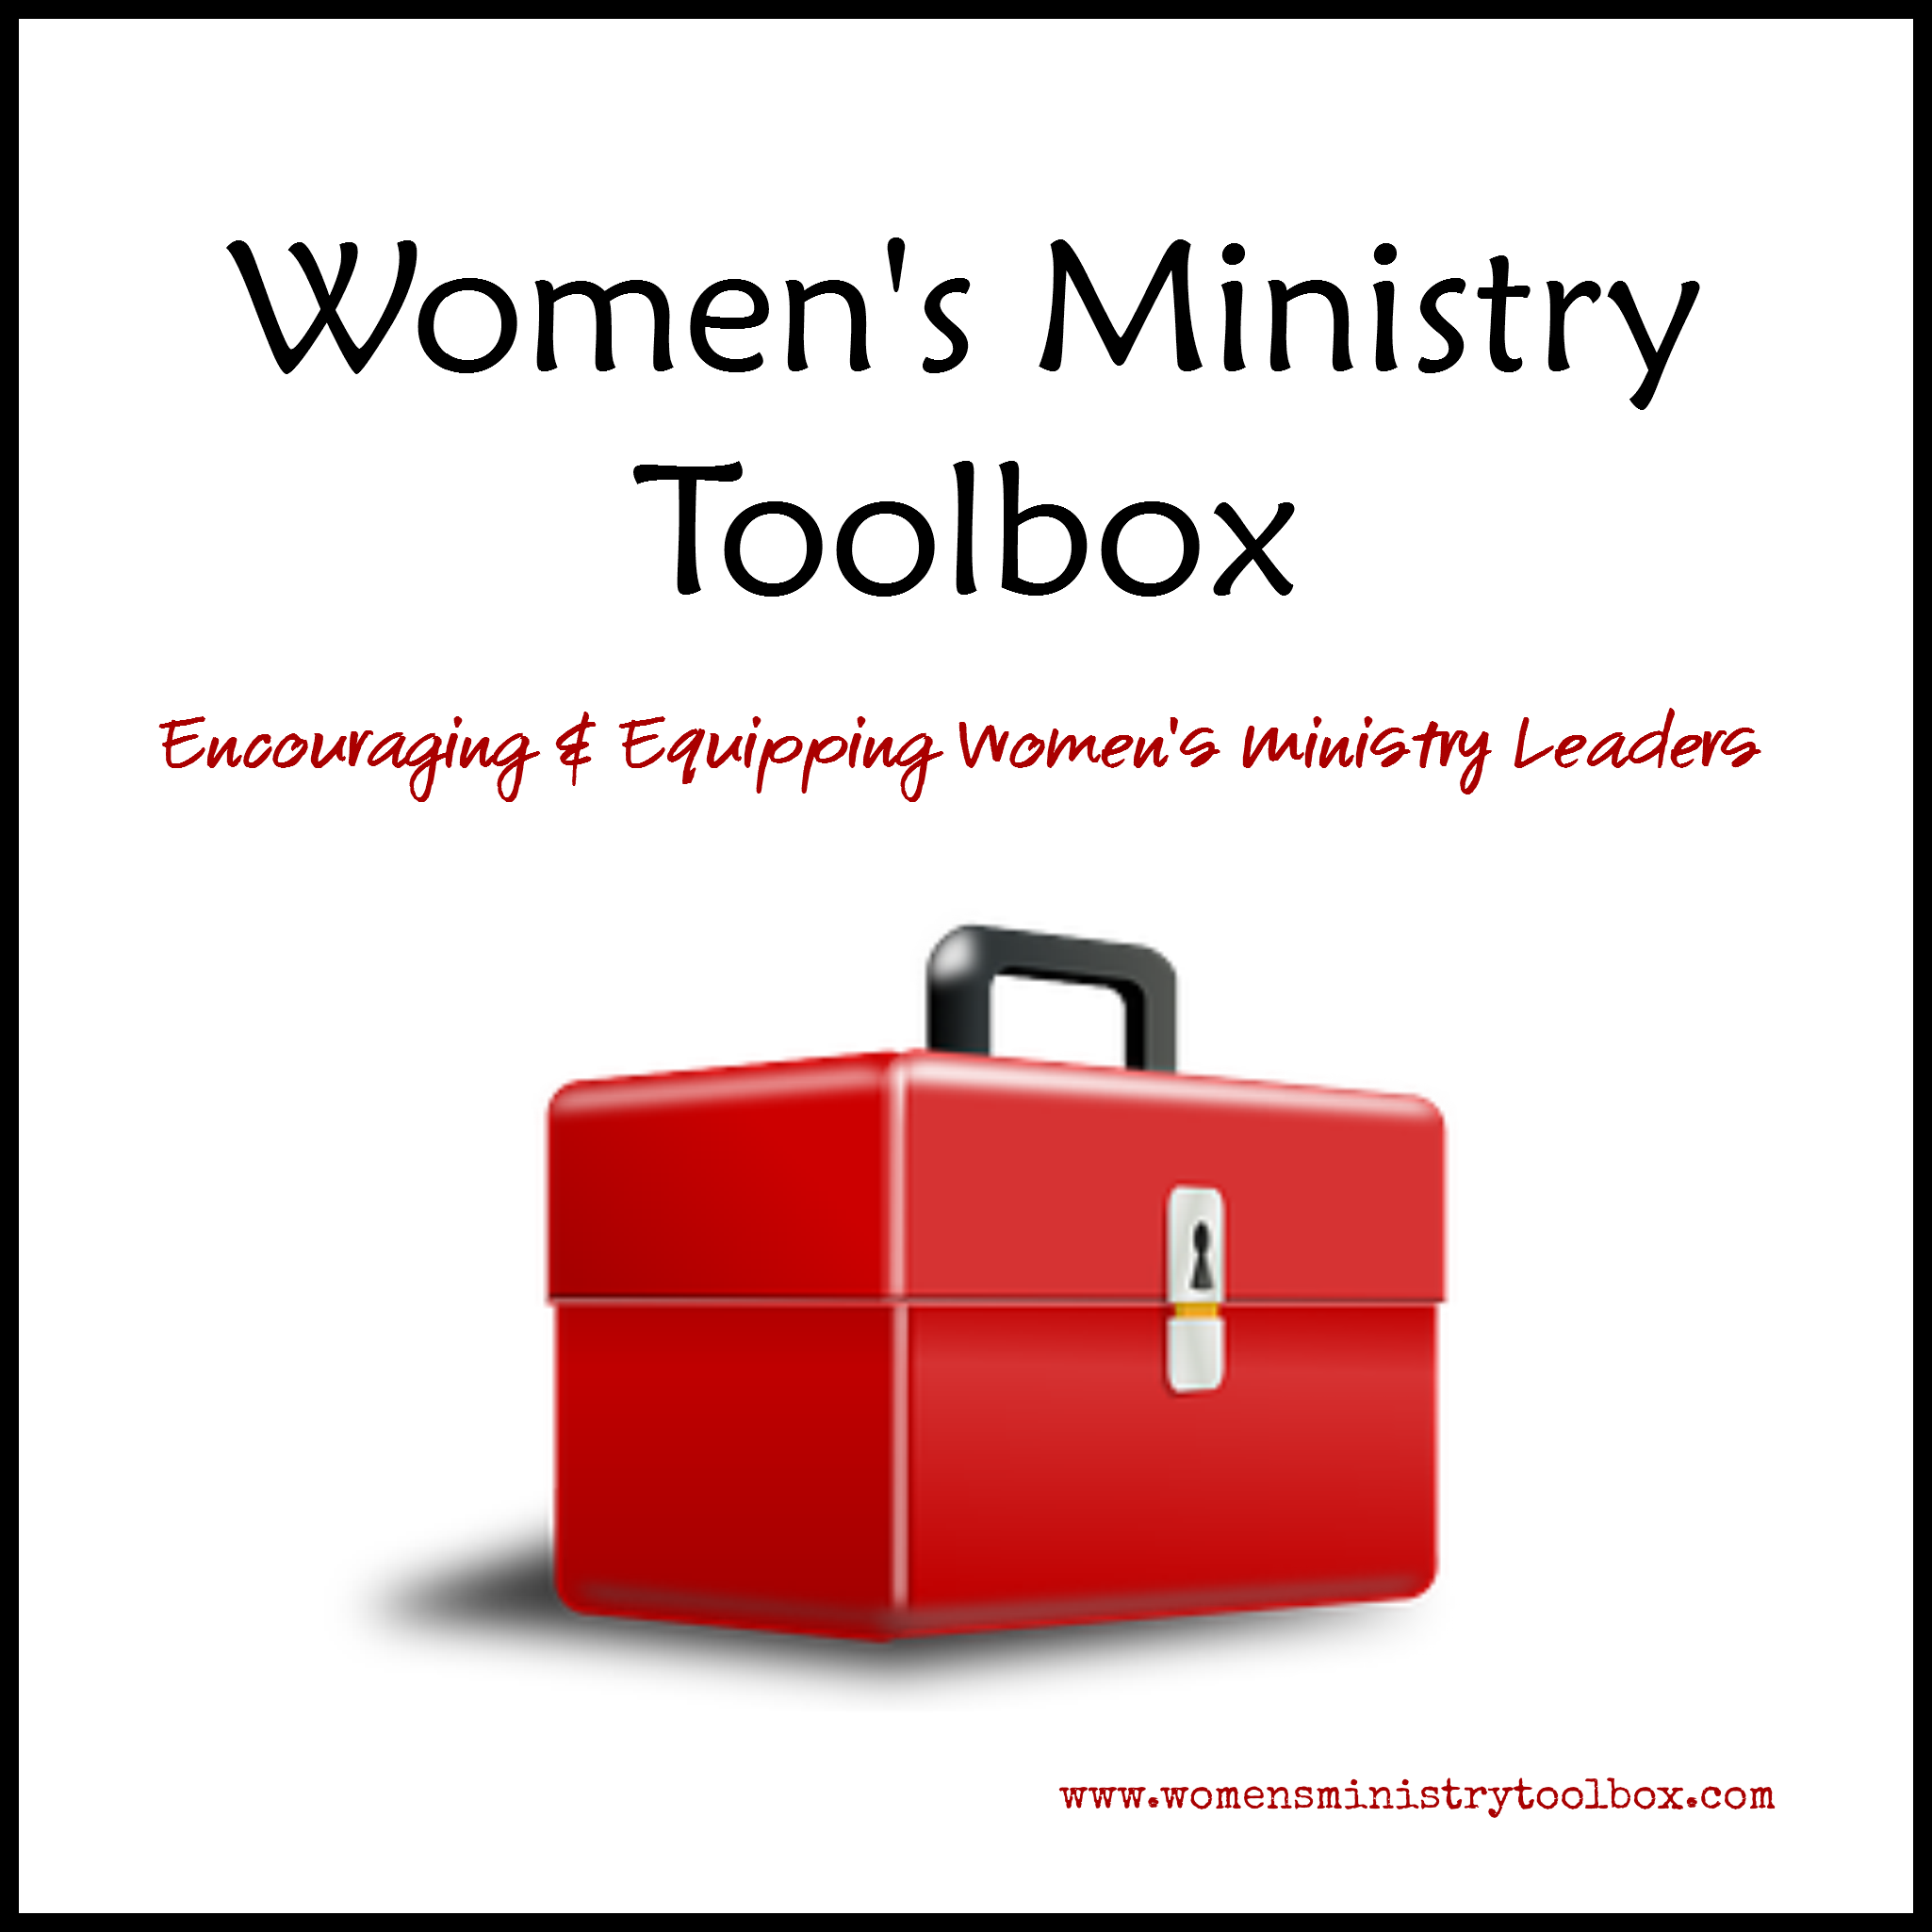 Icebreakers & Games Archives - Women's Ministry Toolbox